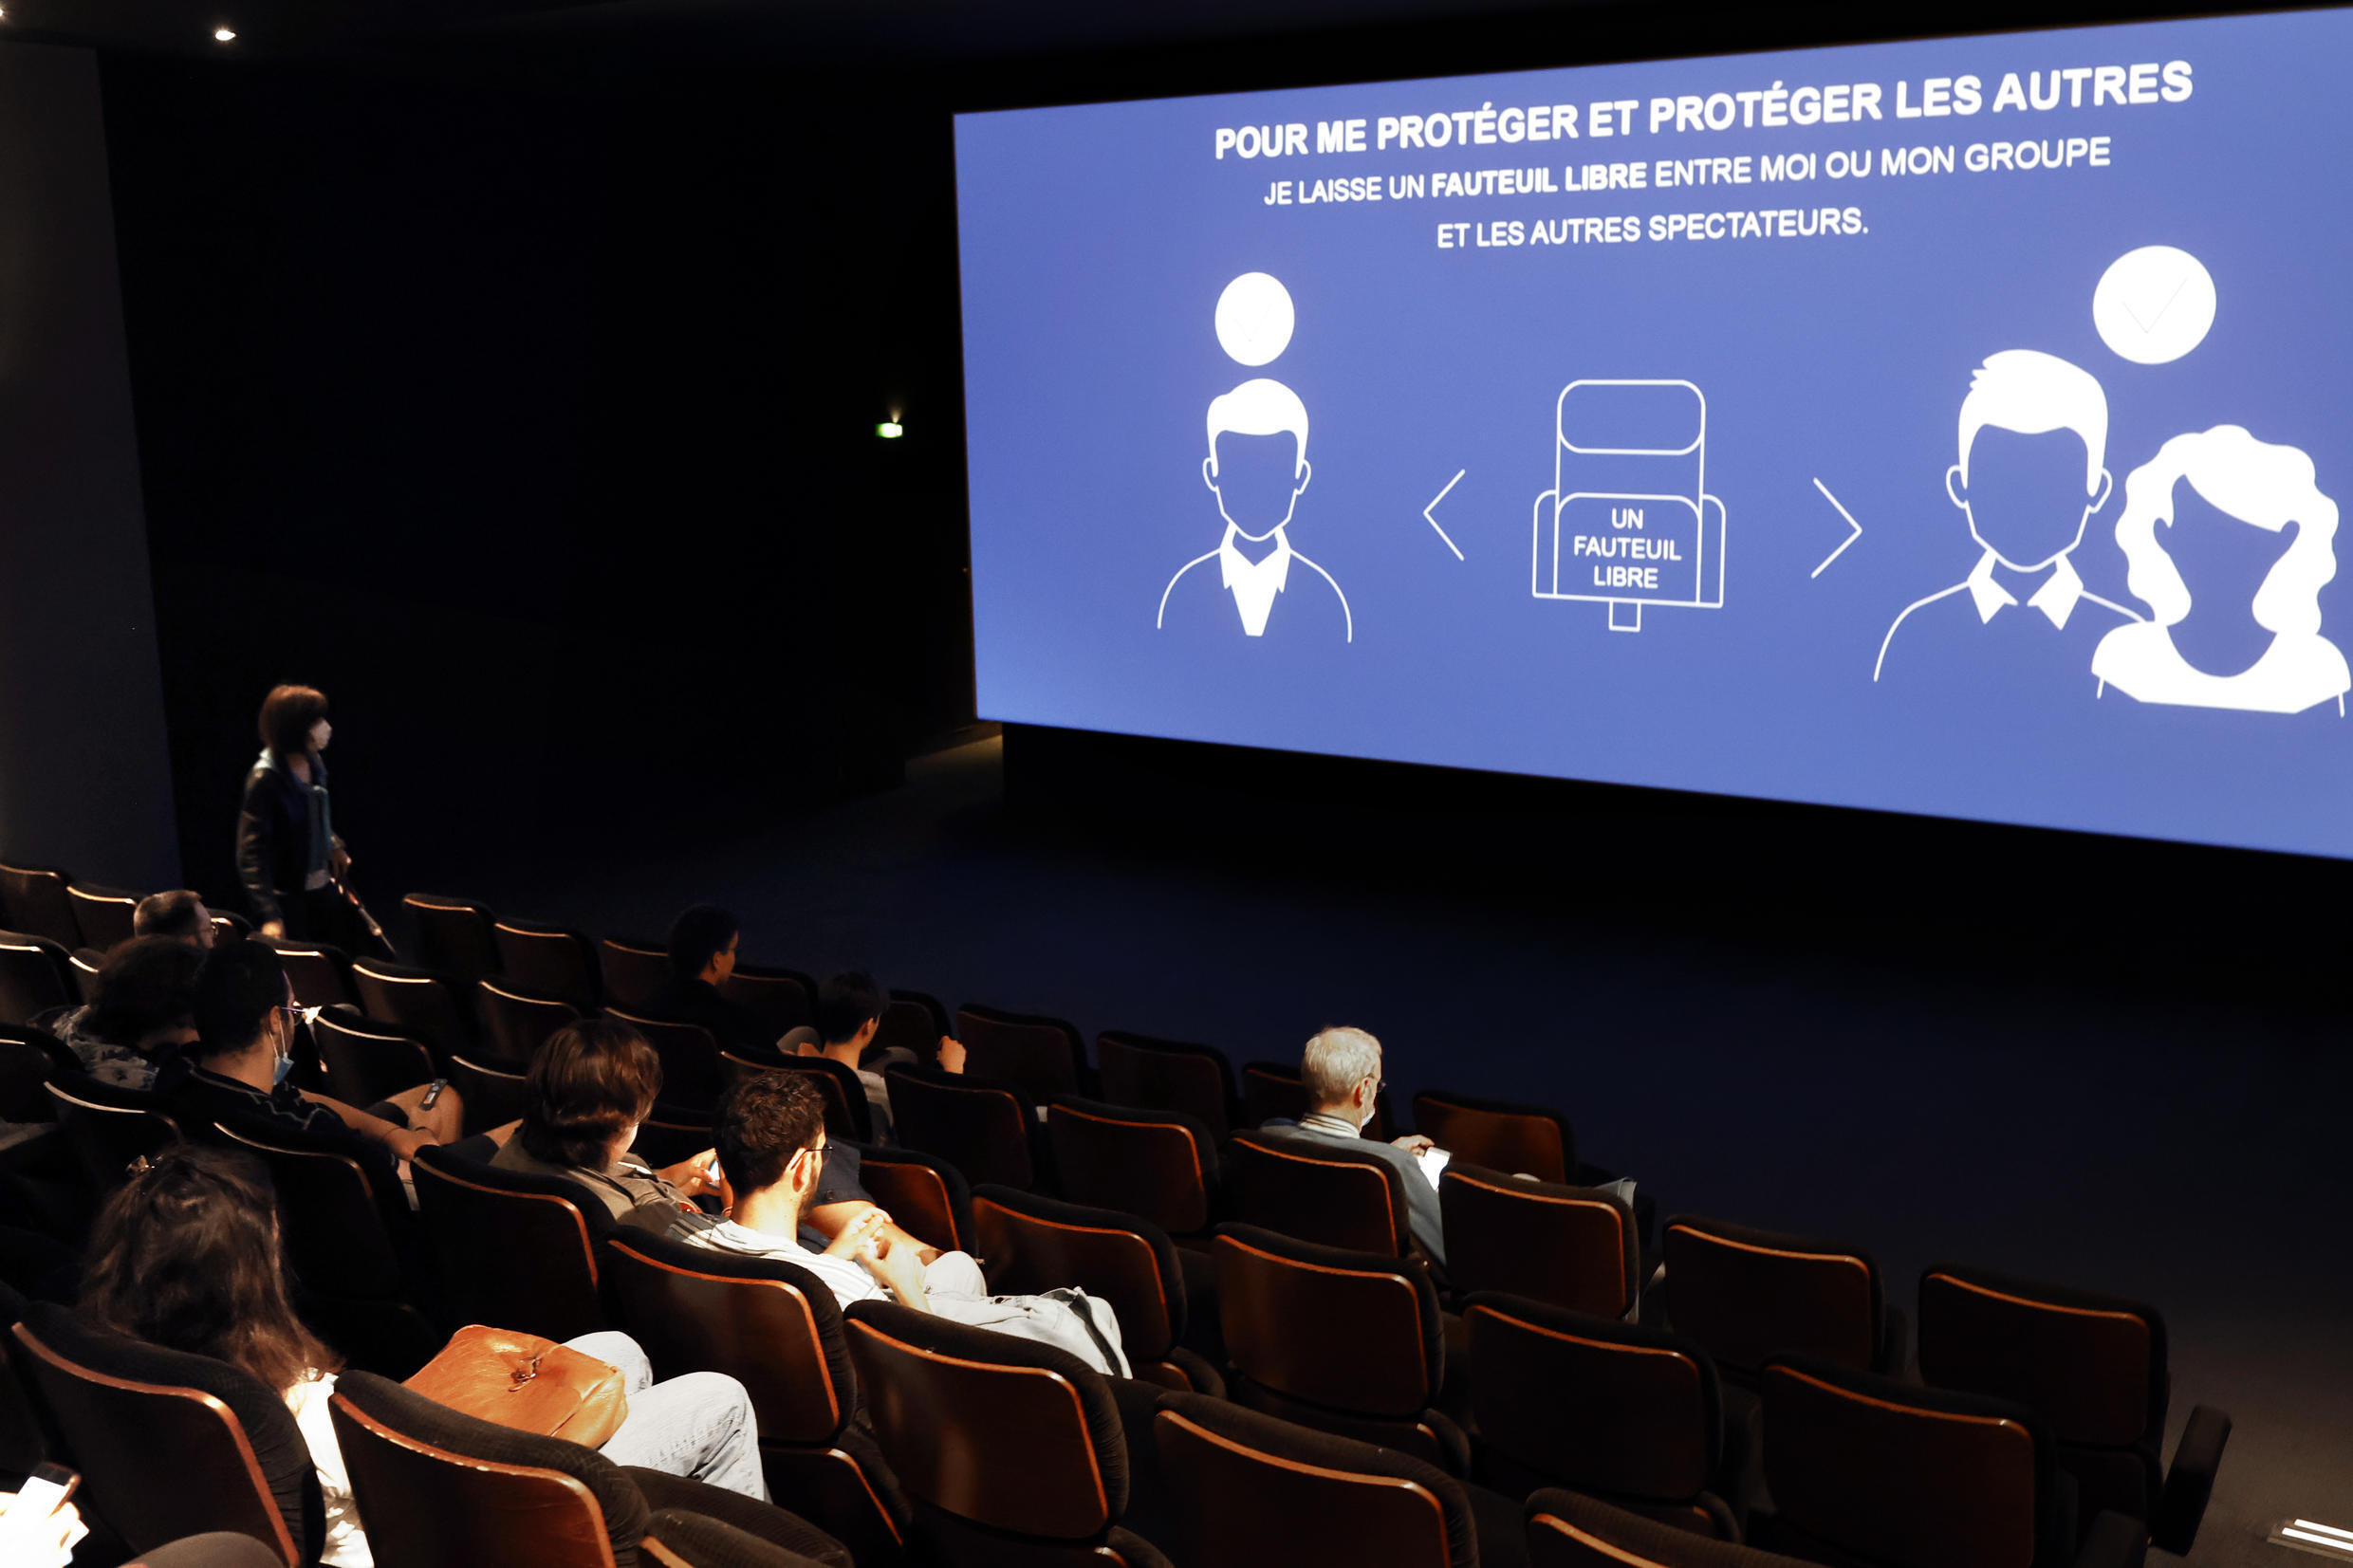 Cinemas reopened in France in the summer of 2020 with sanitary restrictions and social distancing